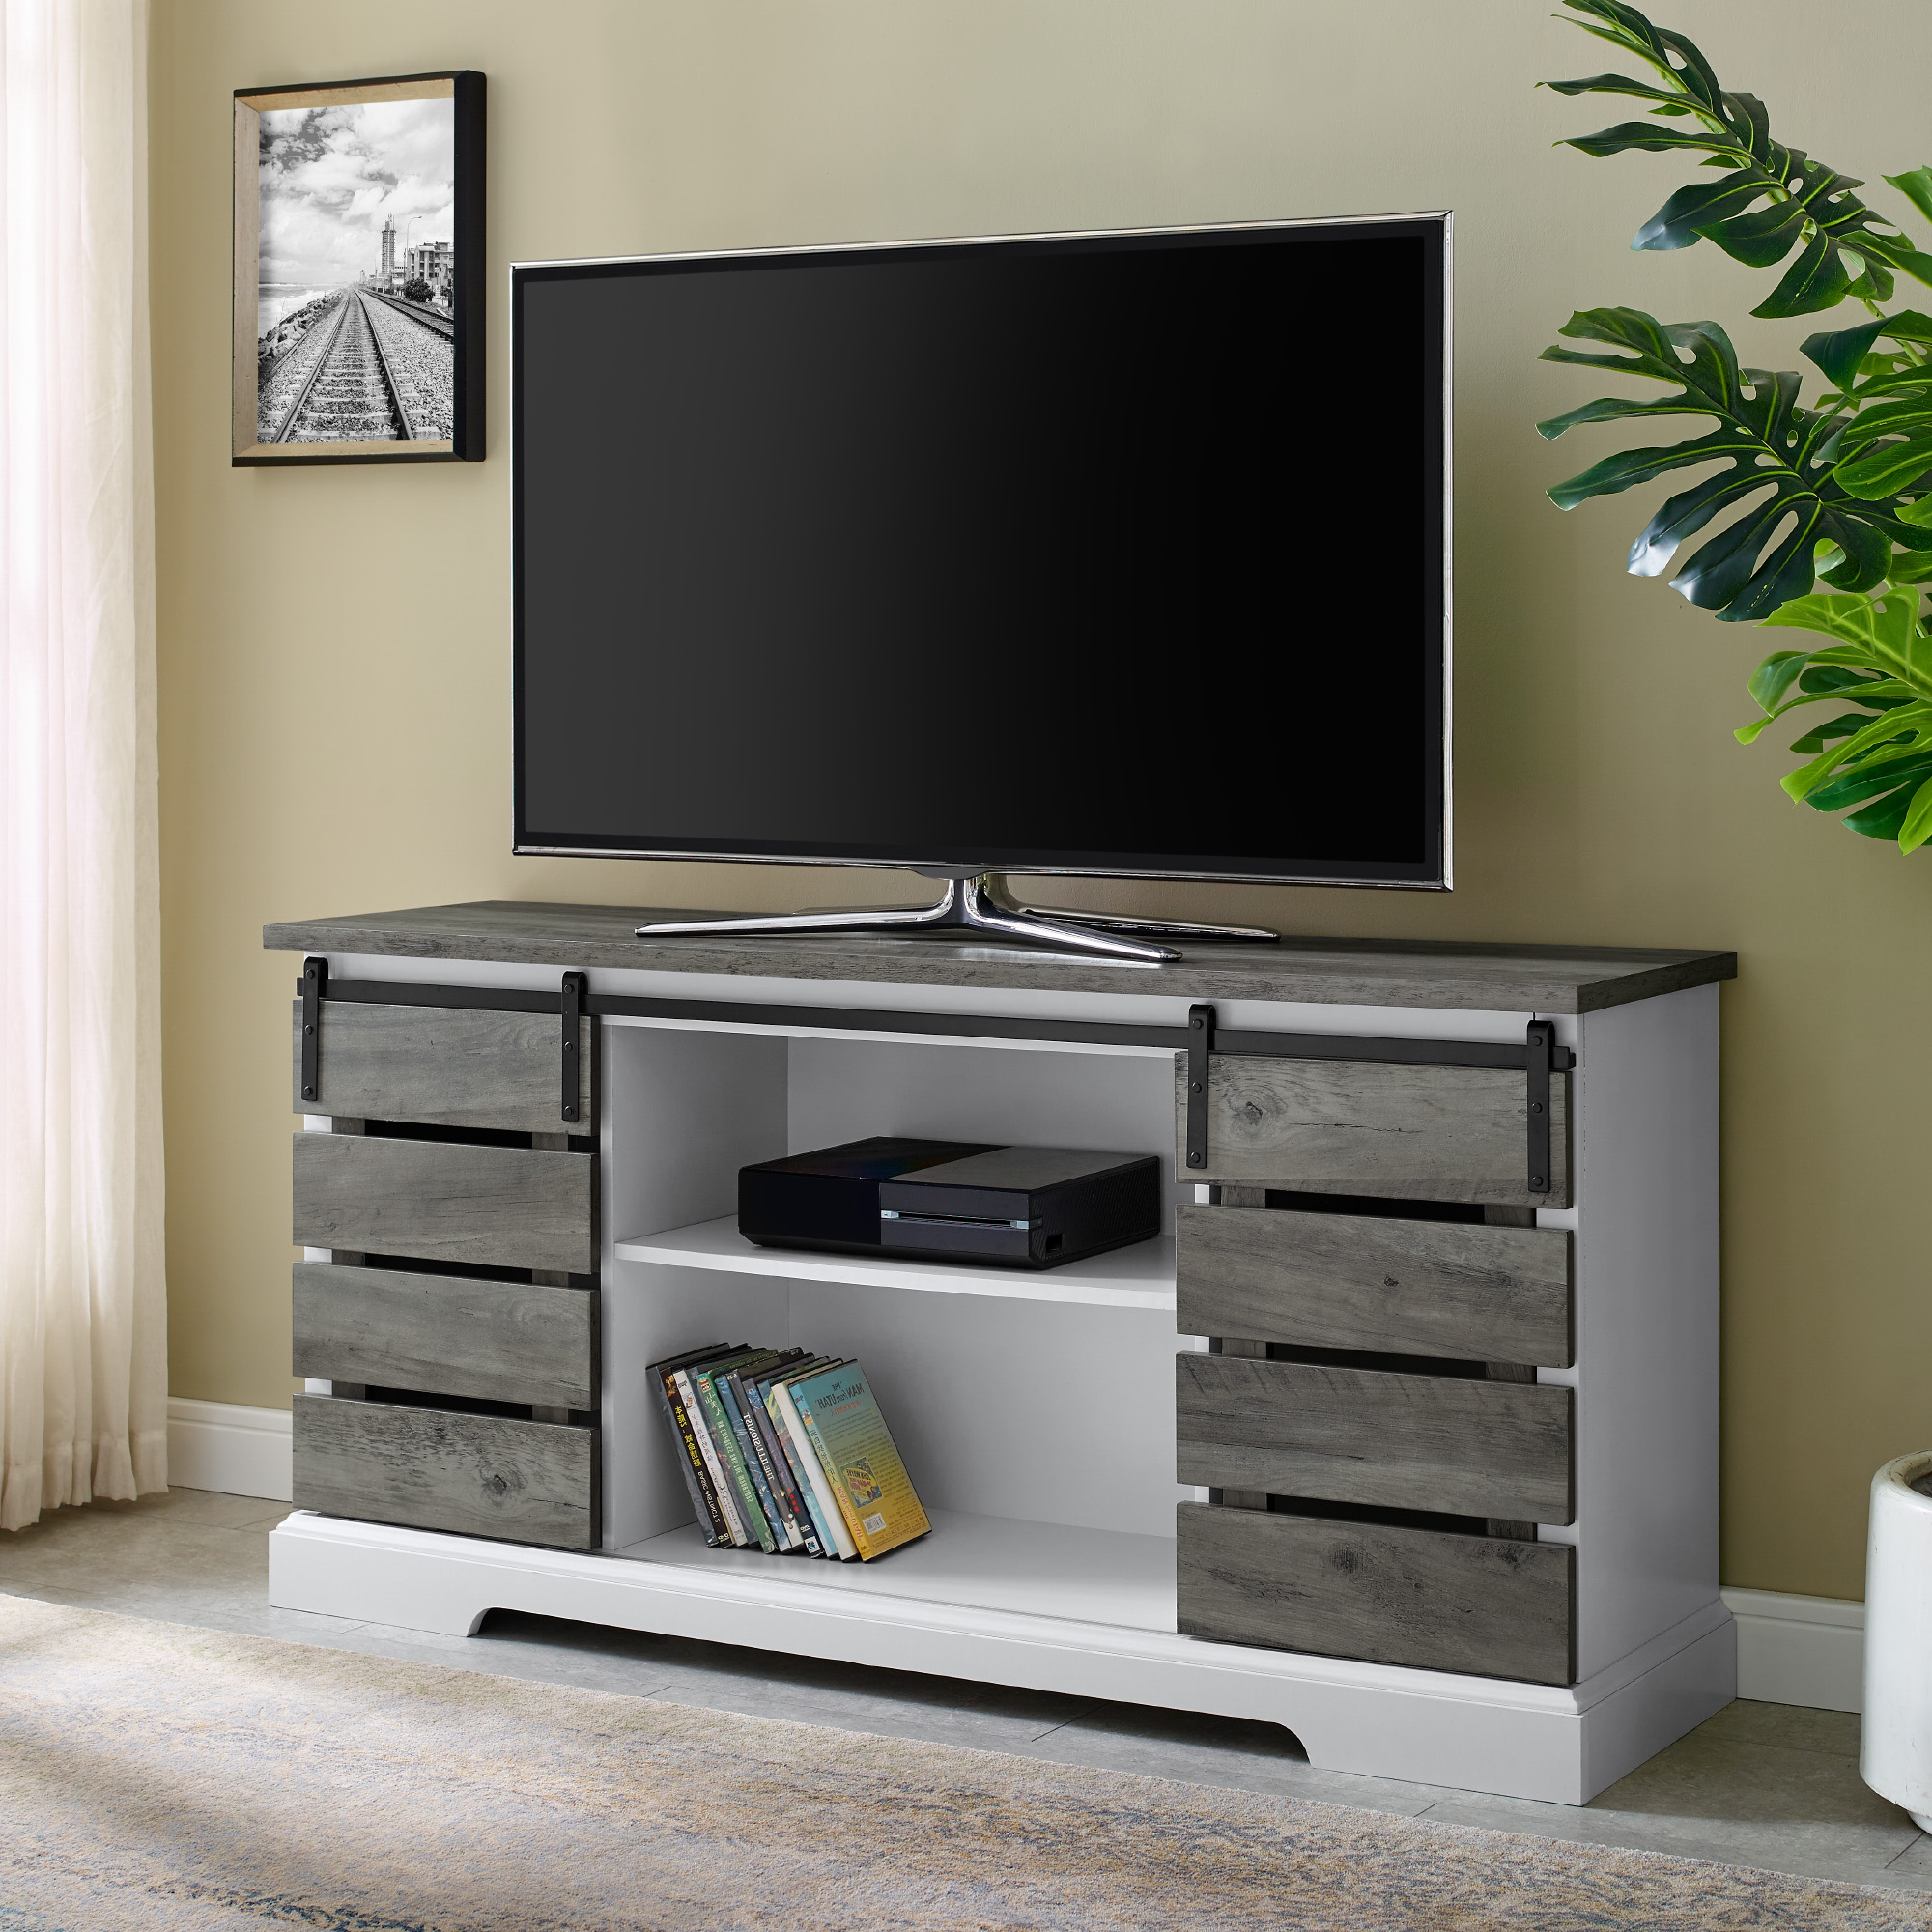 Most Recently Released Woven Paths Farmhouse Sliding Slat Door Tv Stand For Tvs Regarding Woven Paths Barn Door Tv Stands In Multiple Finishes (View 2 of 10)